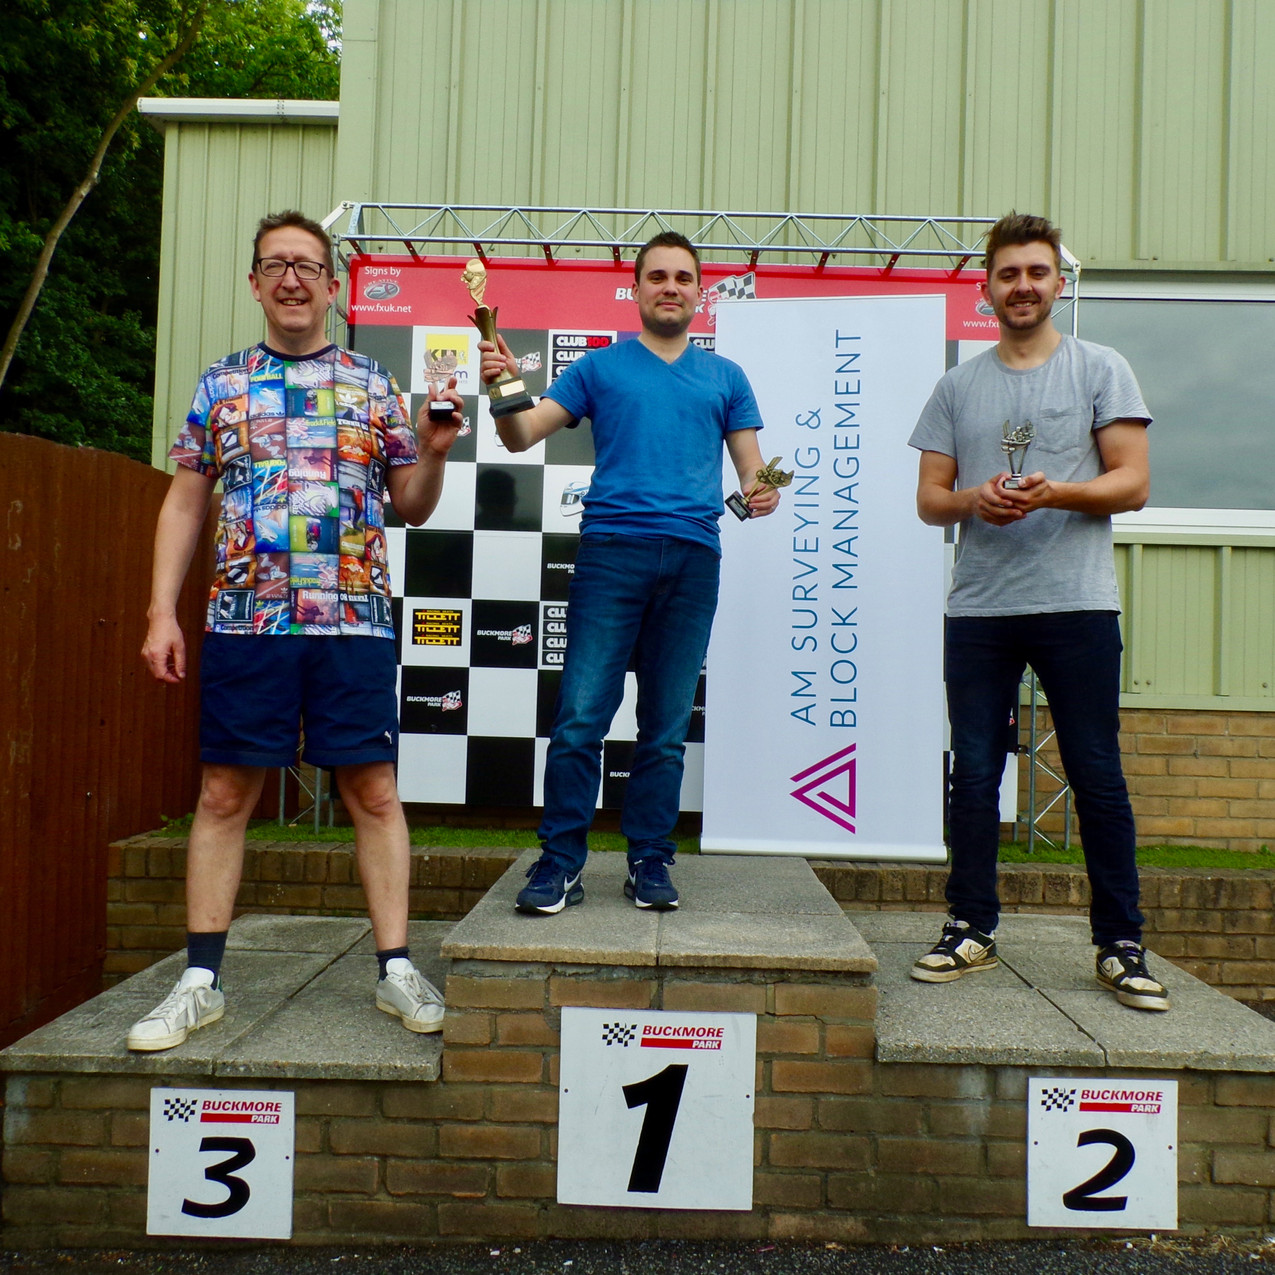 On the Podium:  1st Place: Zak Sladden, Property Manager  2nd Place: Matthew Mackintosh, Head of Block Management  3rd Place: Matthew Grant, Senior Building Surveyor